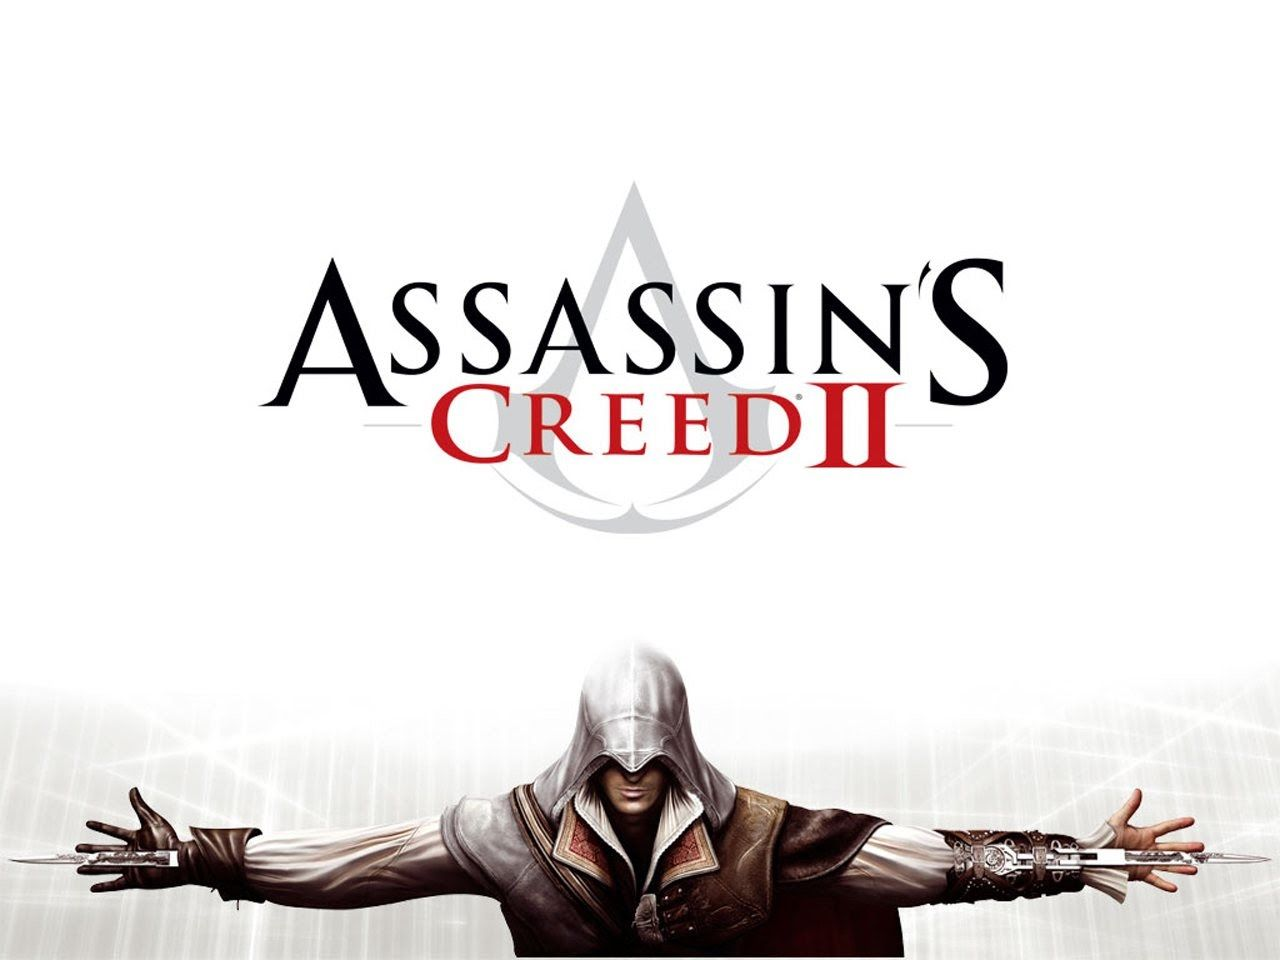 Assassins Creed 2 Full Pc Game Free Download New Version Software